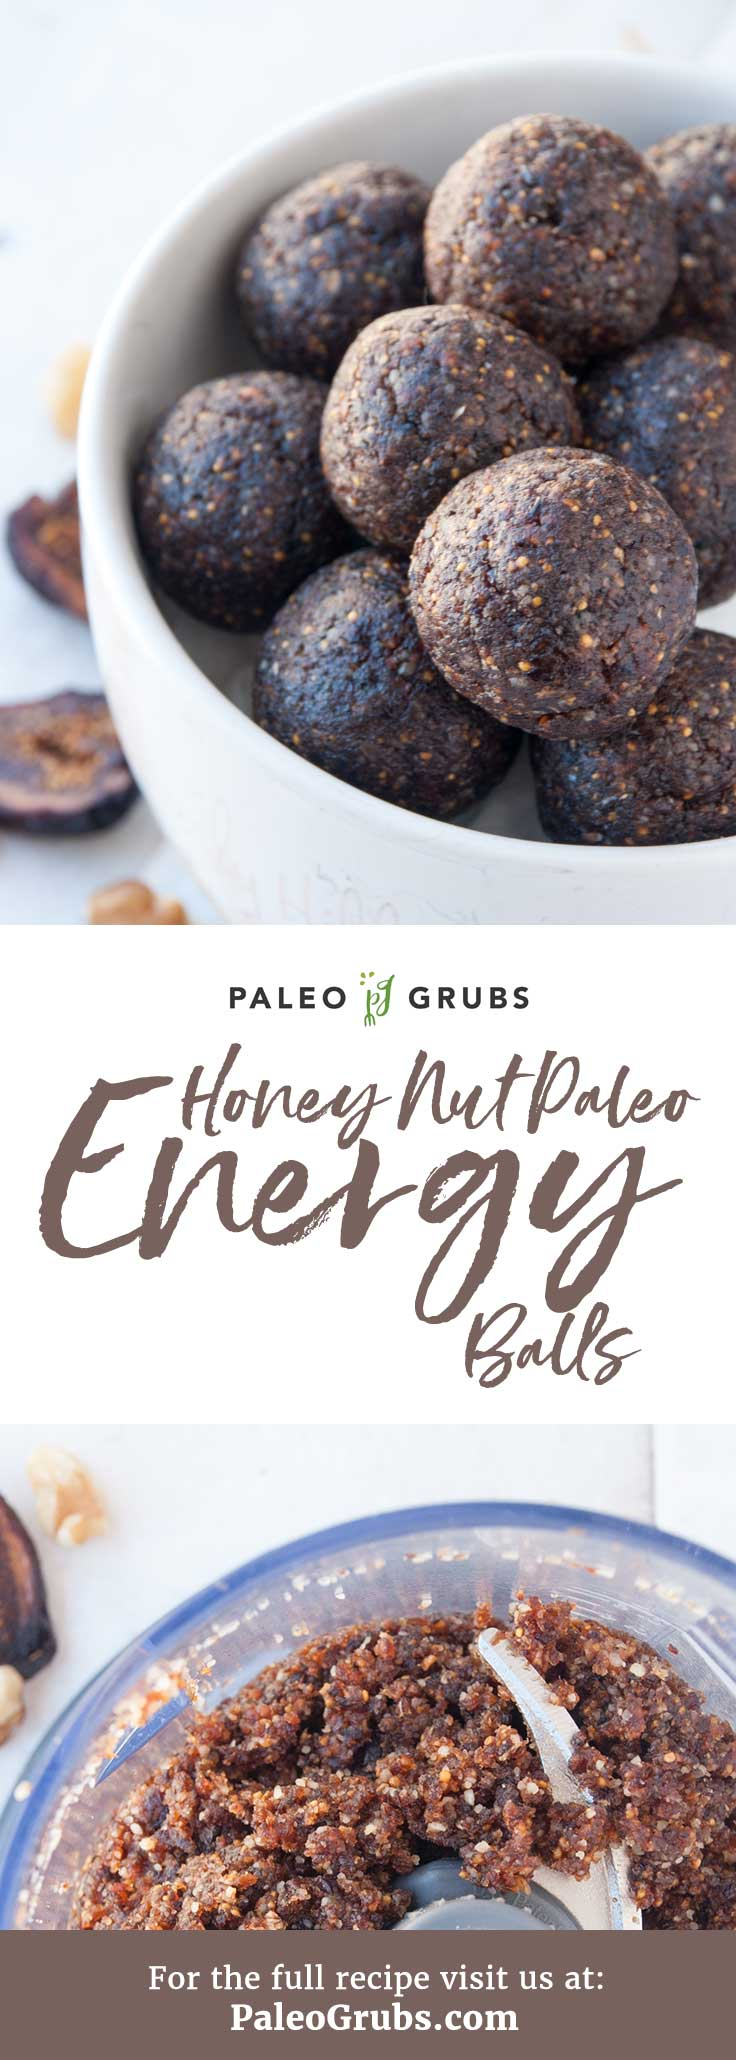 You have never had Paleo energy balls like these!! Wow. Such a tasty nutrient-dense snack and dessert all rolled into one.